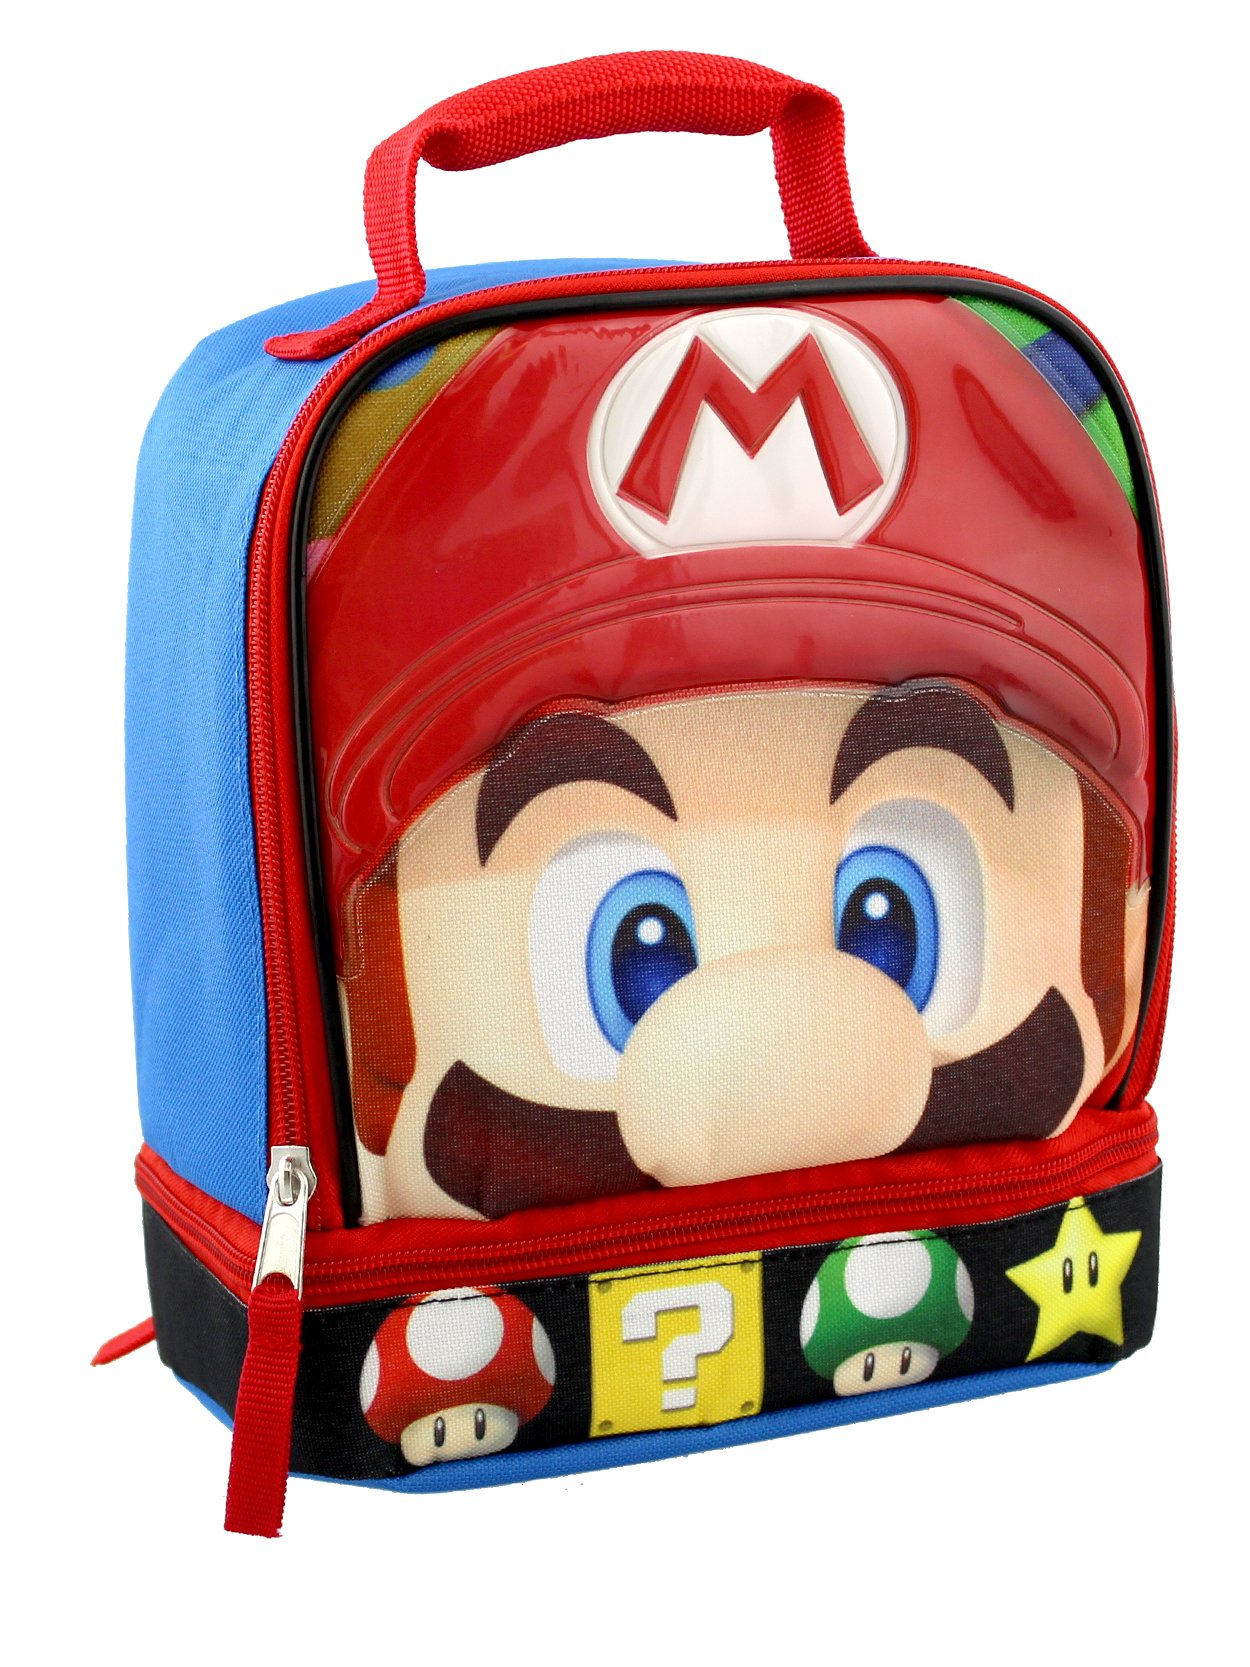 Super Mario Dual Compartment Soft Lunch Box (Blue/Red)